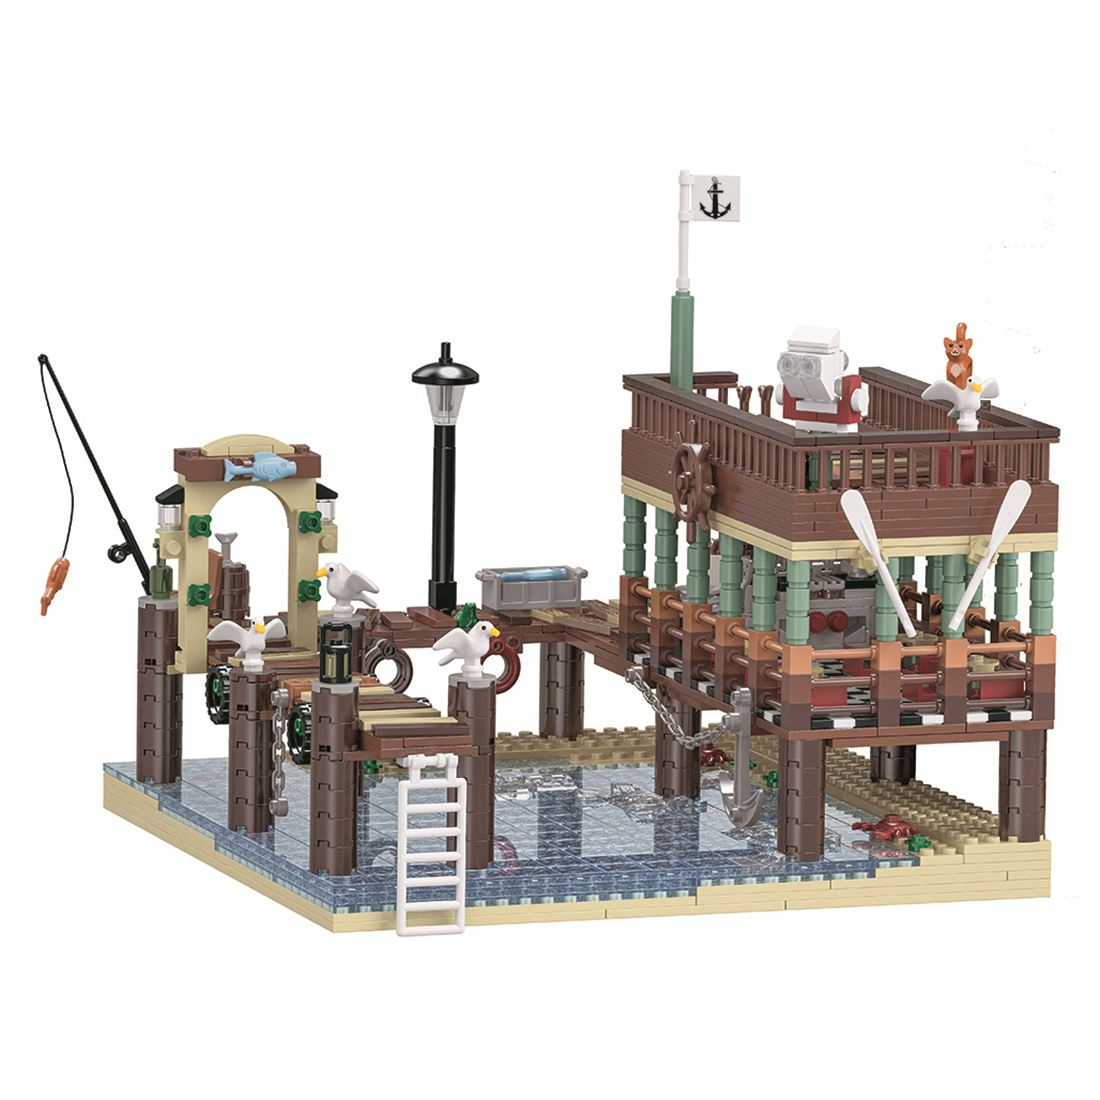 MOC City Series 1394Pcs Small Particle 3D Street View Fish House Pier Building Blocks DIY Assembly Construction Kit For Fun